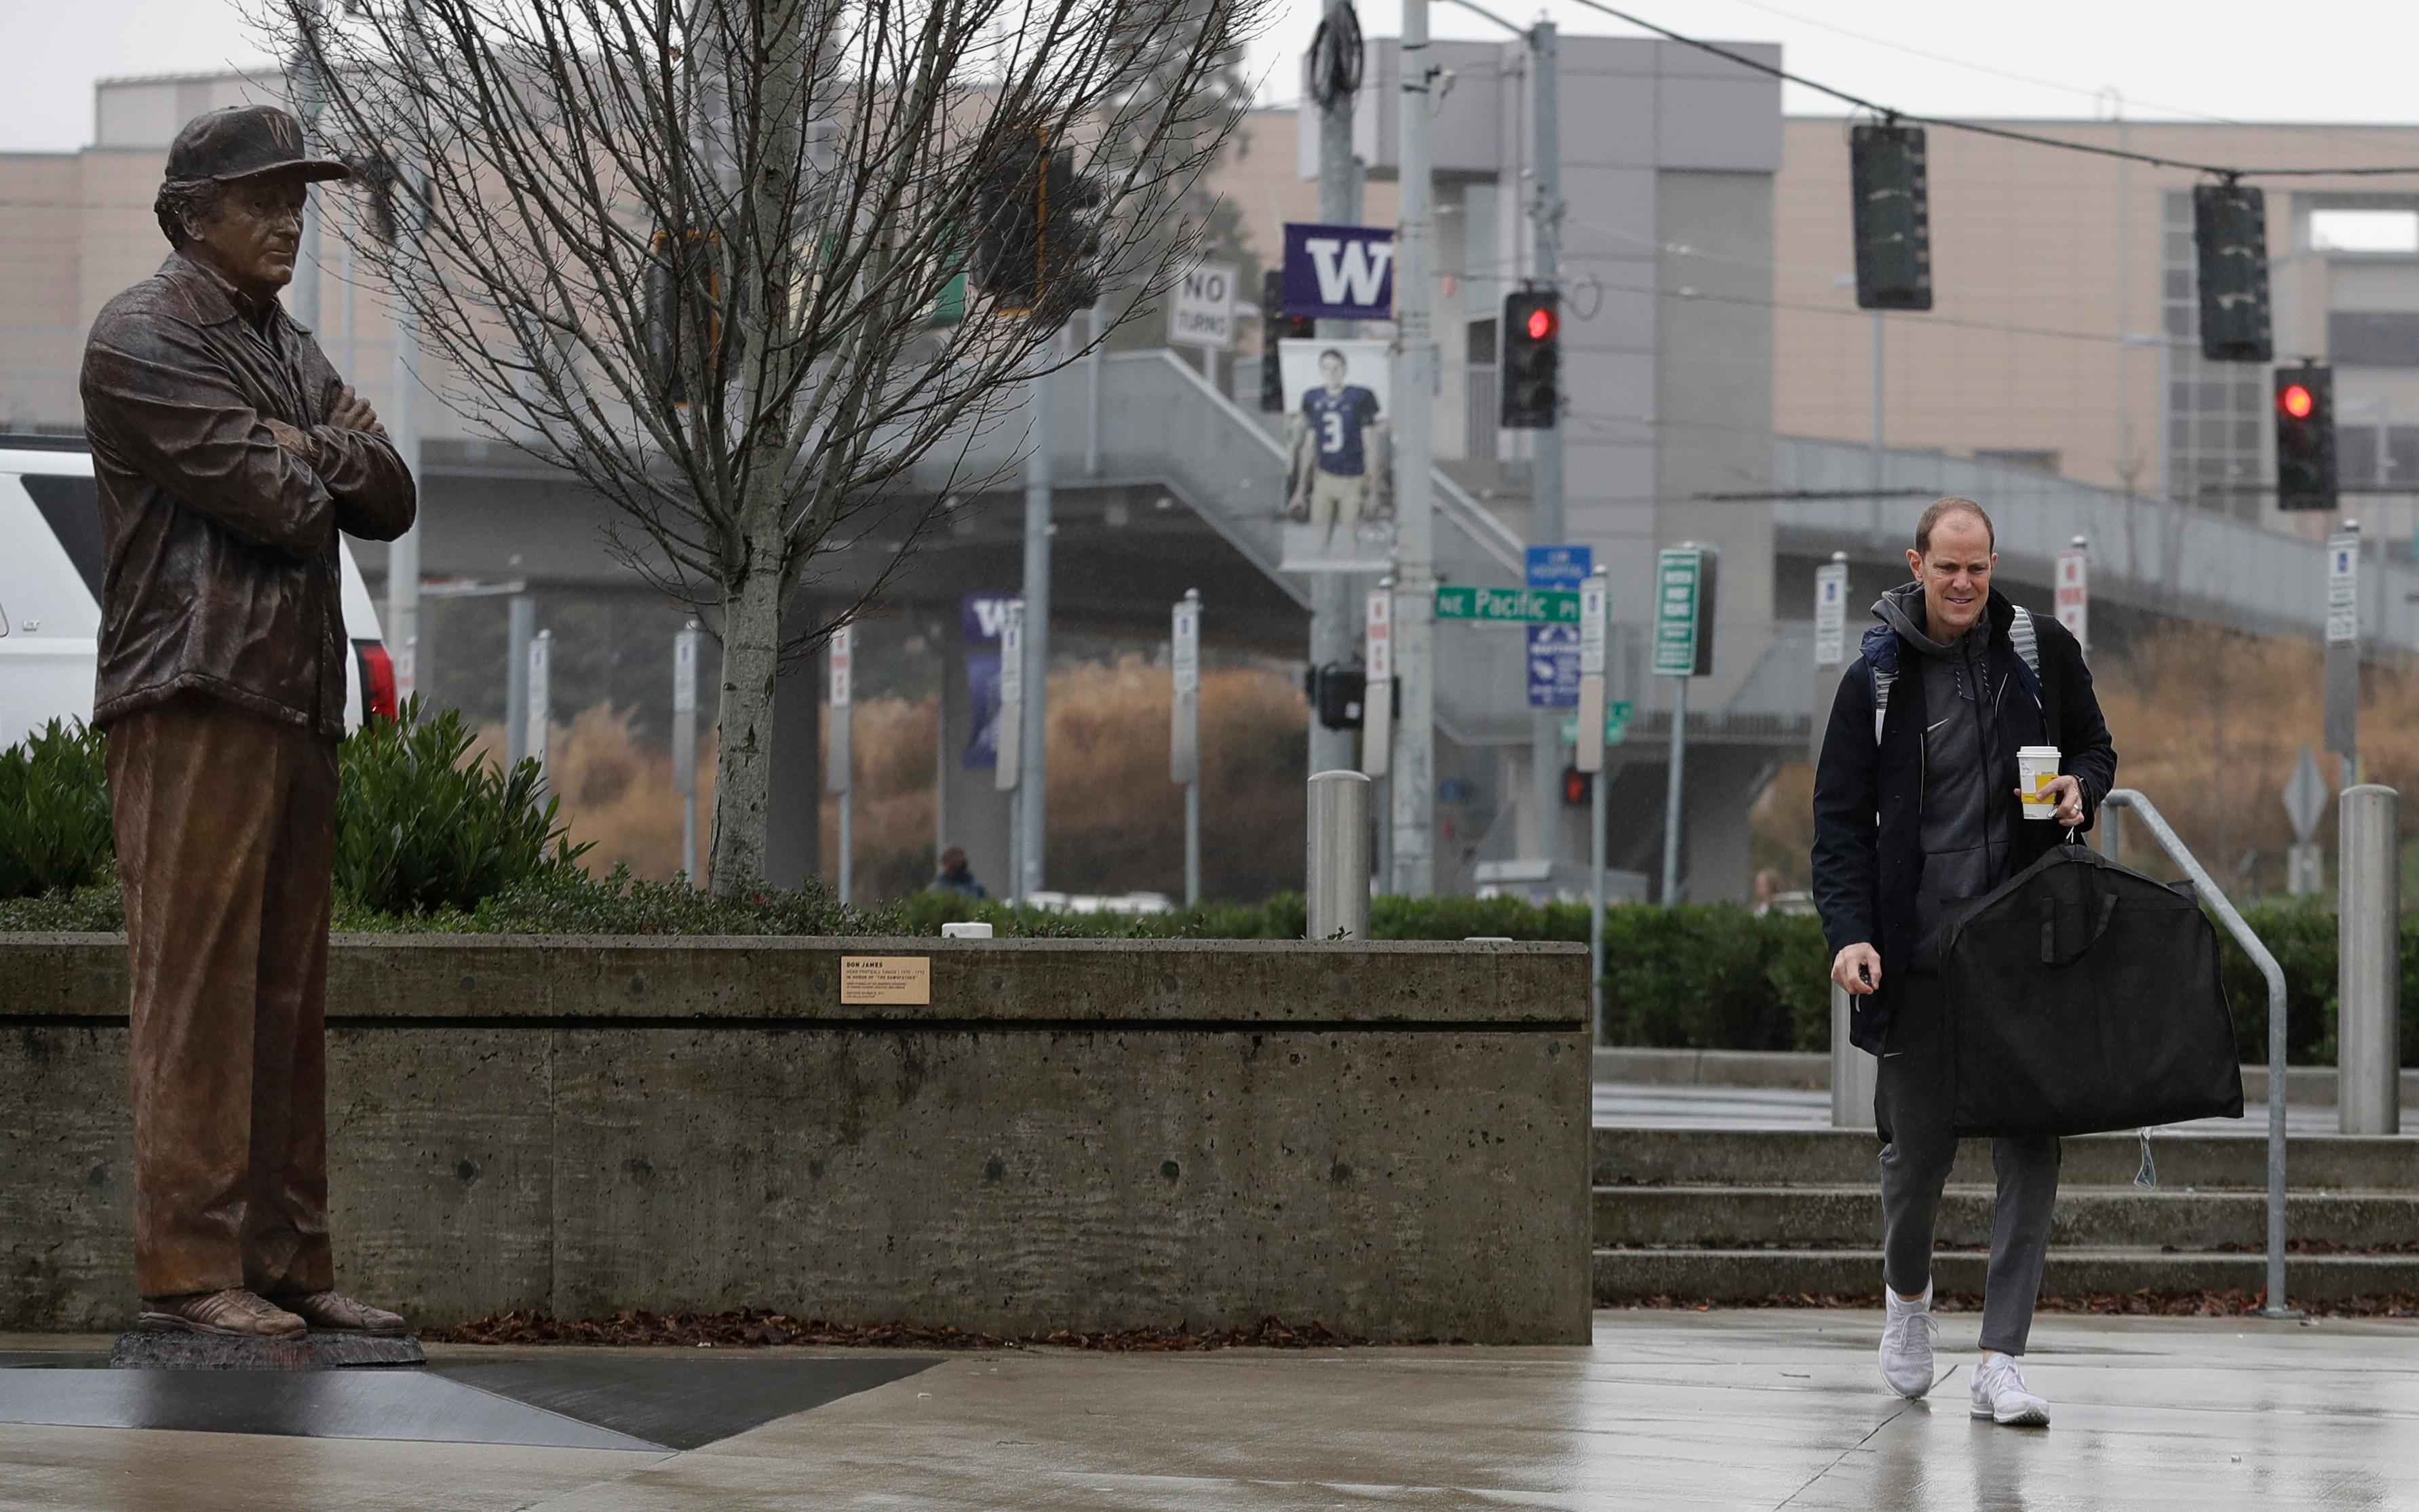 In this Sunday, Jan. 28, 2018 photo,  Washington head coach Mike Hopkins walks past the statue of legendary Washington football coach Don James as he arrives on campus before an NCAA college basketball game against Washington State in Seattle. One of the most surprising stories in college basketball is what Hopkins is doing in his first season at Washington and how the Huskies are in the conversation for an NCAA bid entering February. (AP Photo/Ted S. Warren)